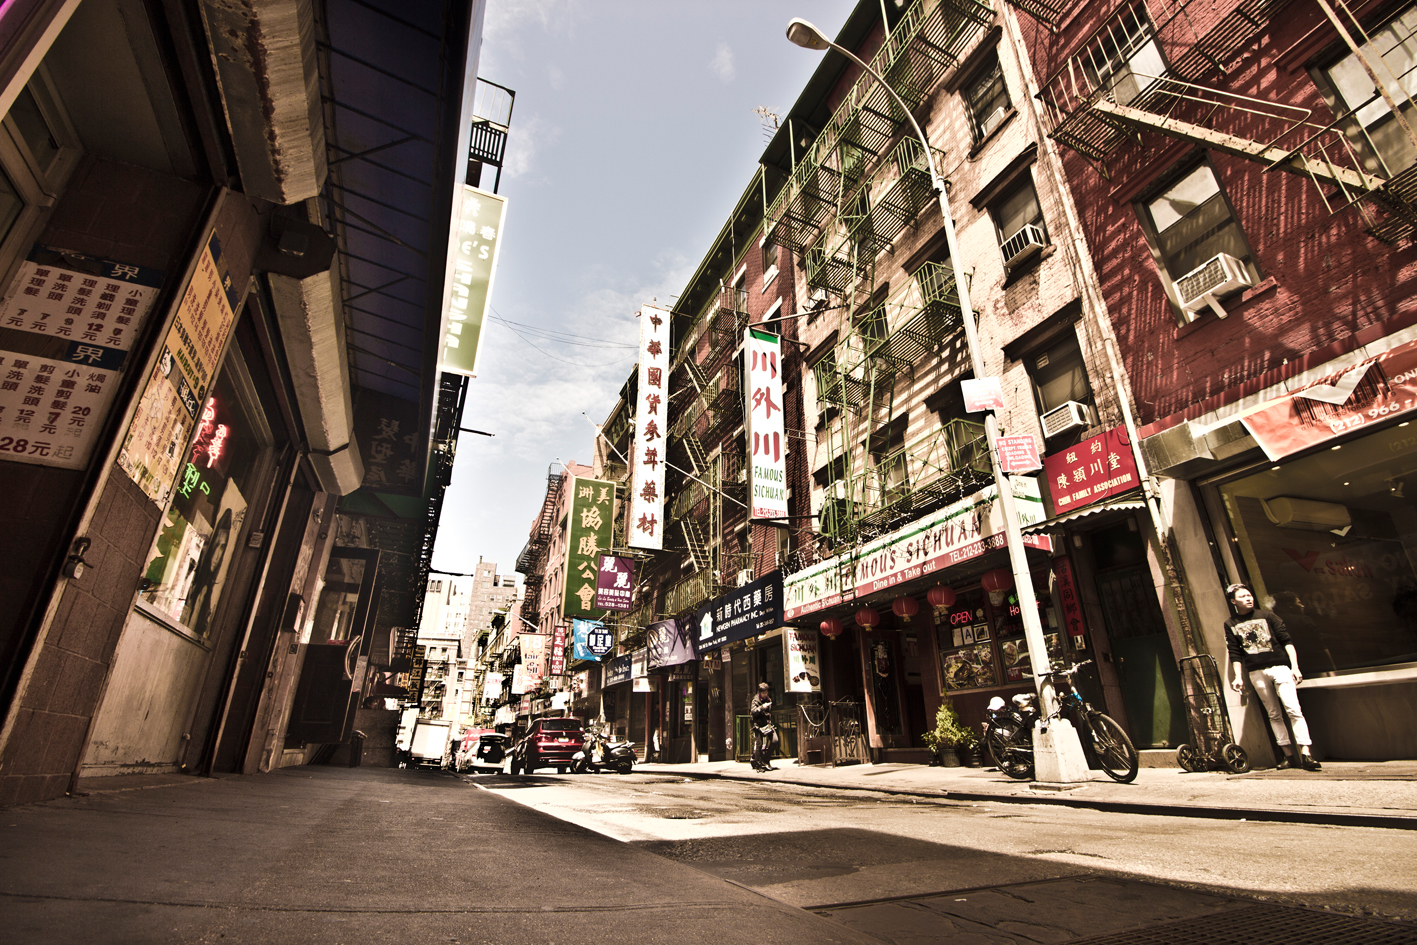 China Town, Manhattan, New York